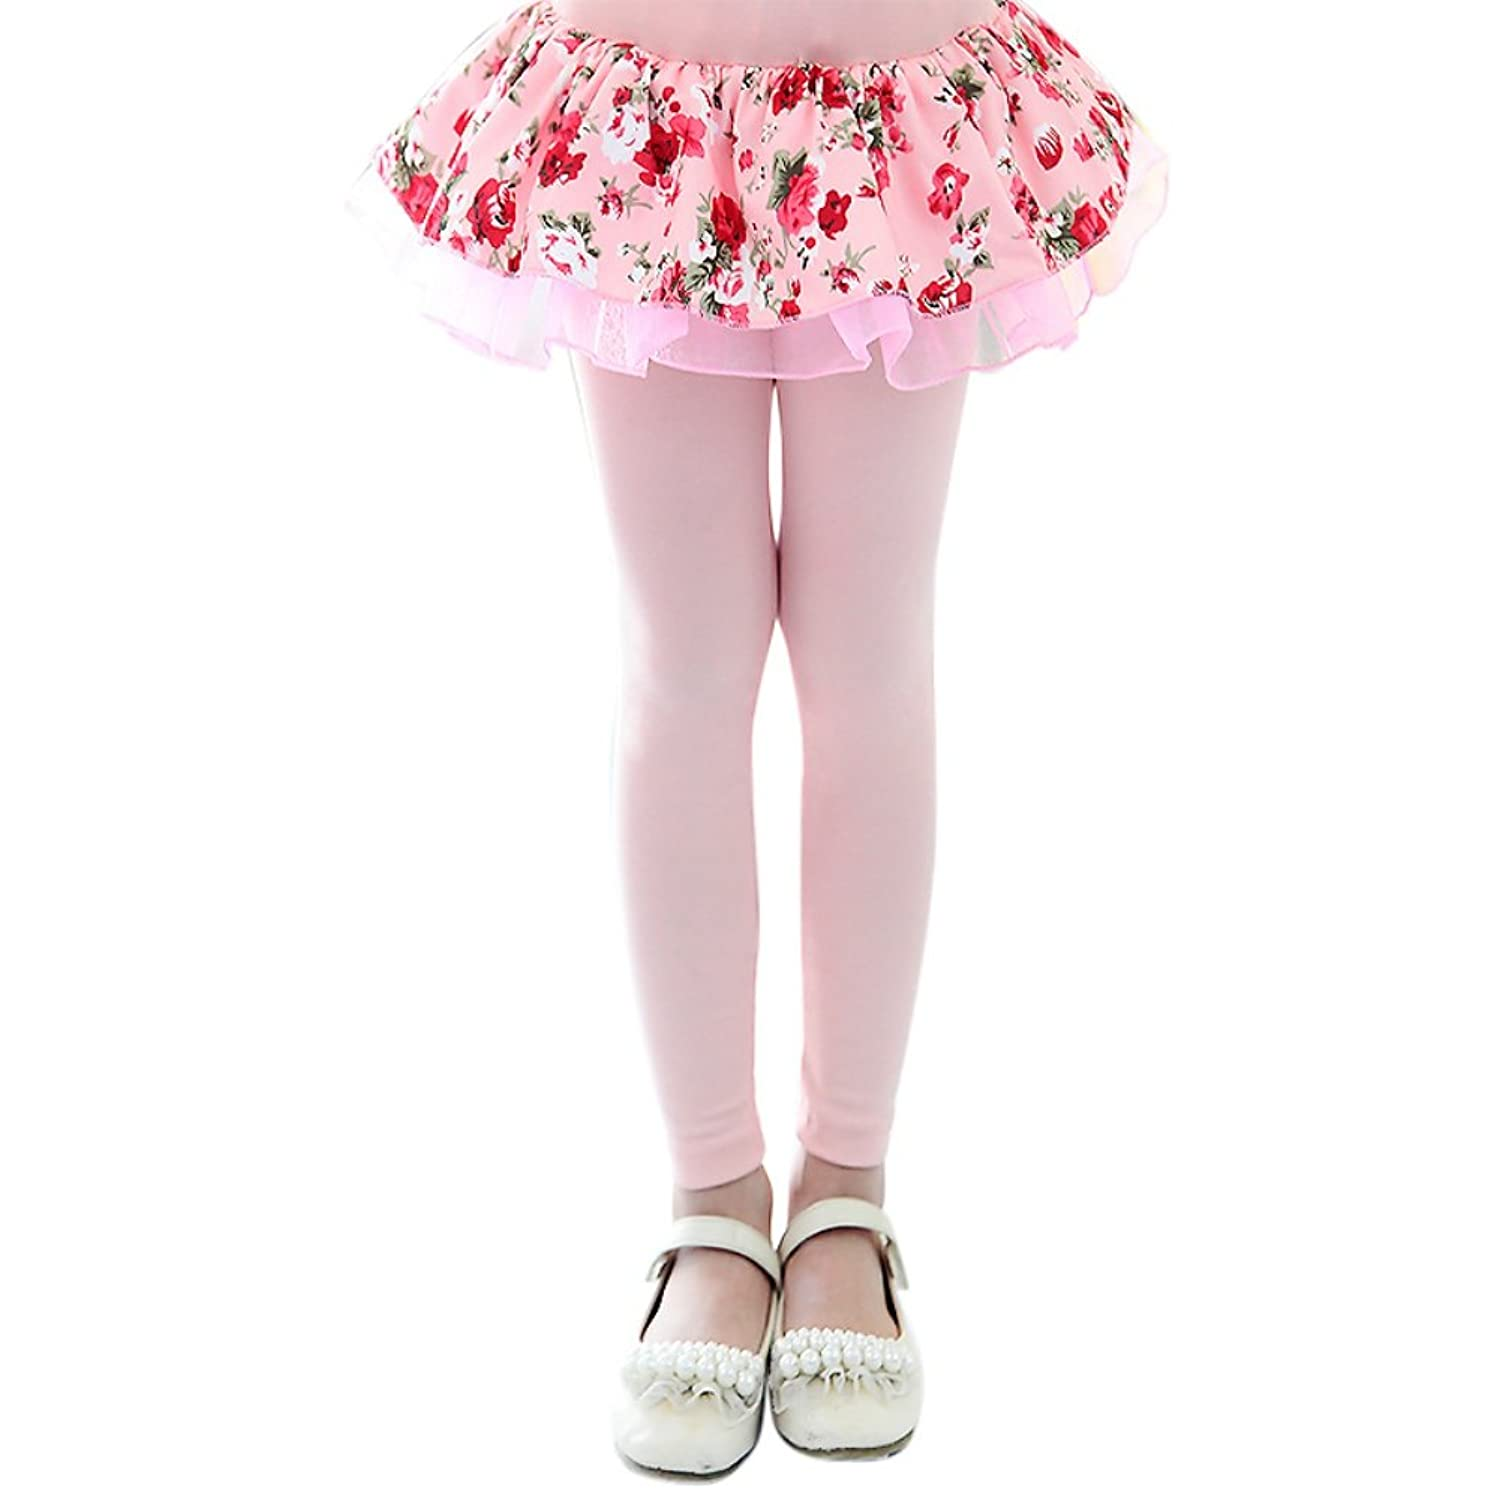 Luxsea Little Girls Pantskirts Kids Culotte Legging Pants Trousers Pantskirt